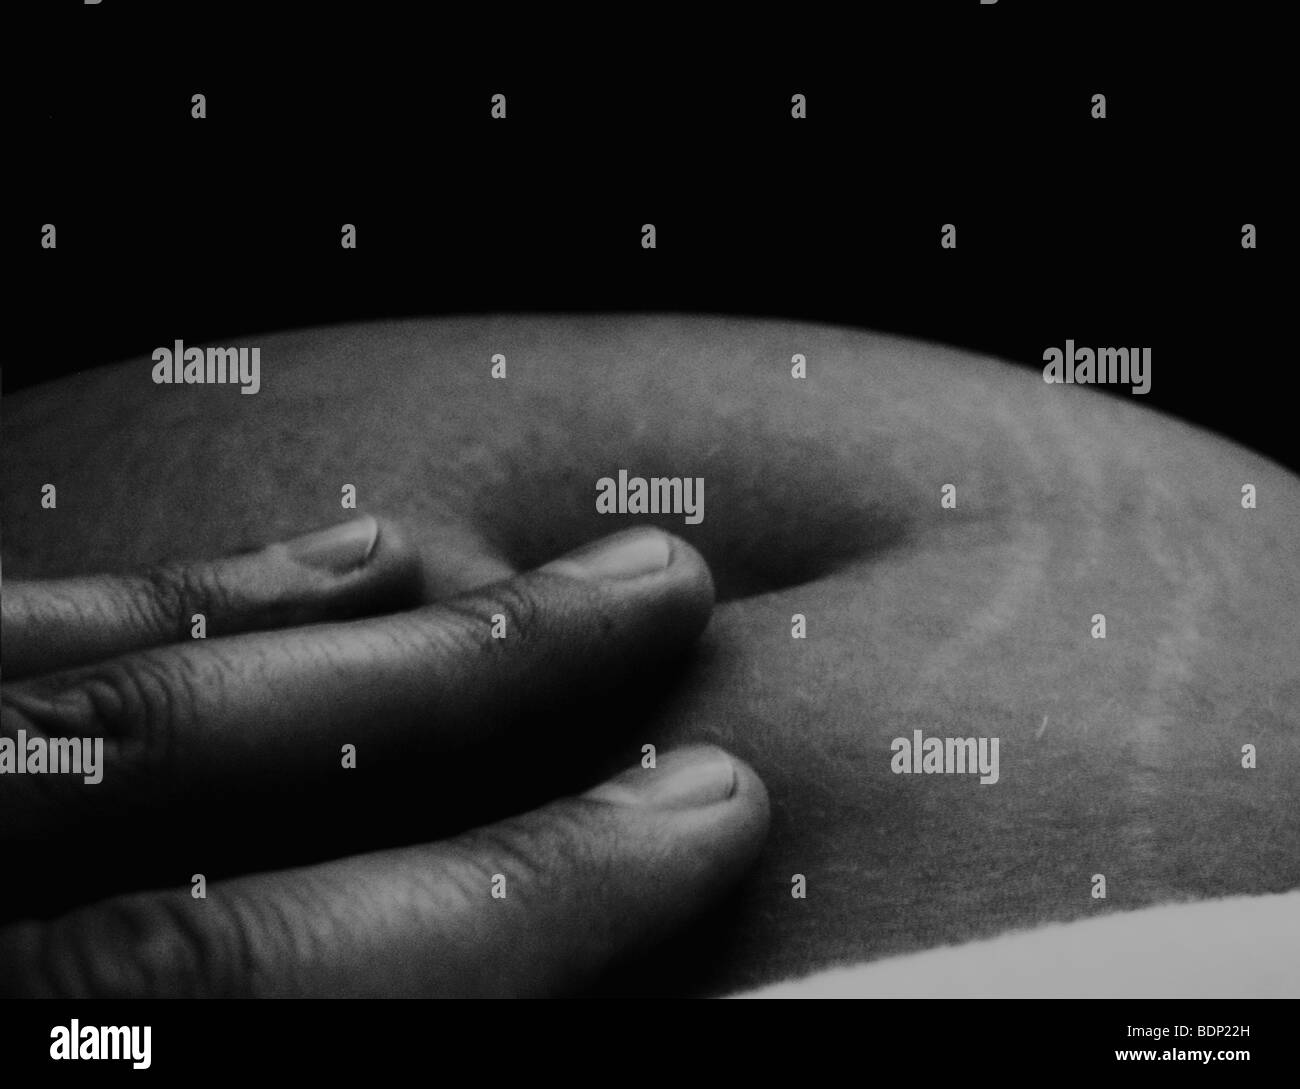 Close up of a woman's body with fingers touching skin - Stock Image